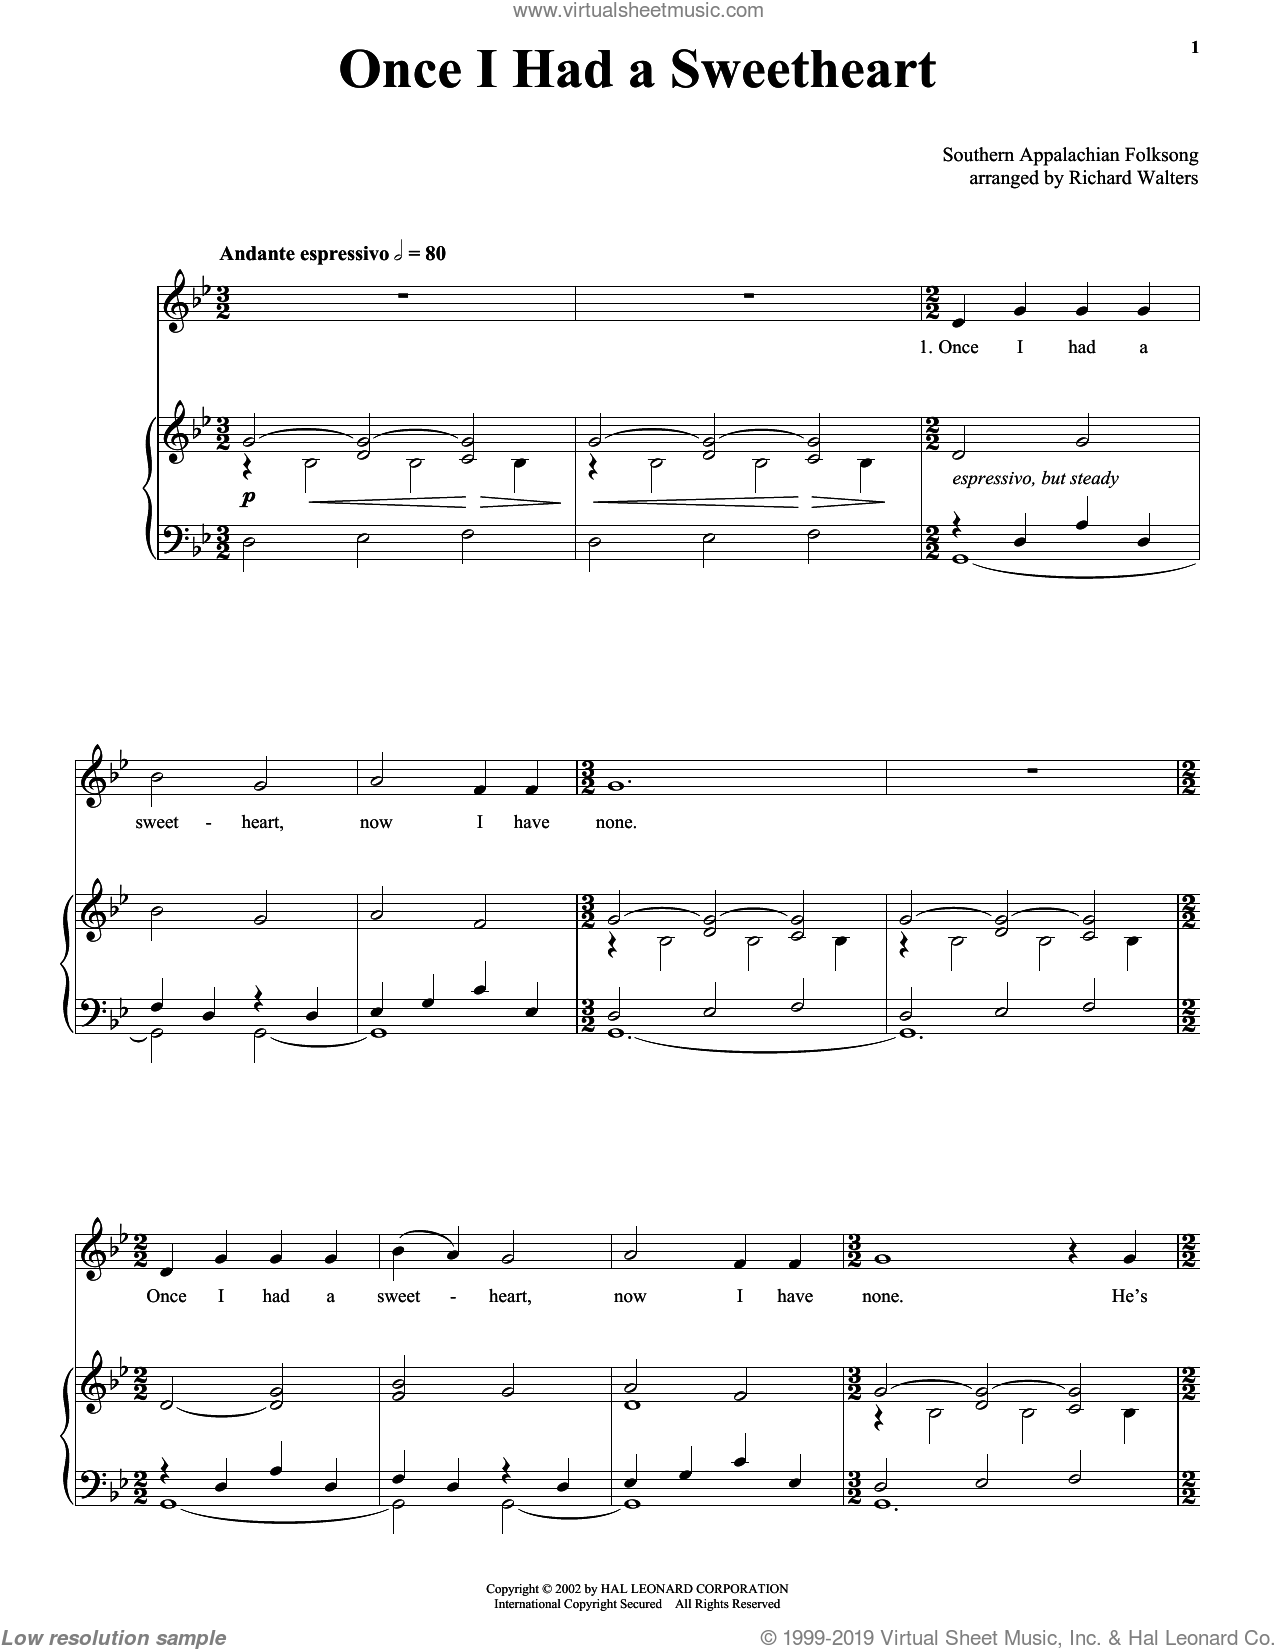 Once I Had A Sweetheart sheet music for voice, piano or guitar. Score Image Preview.